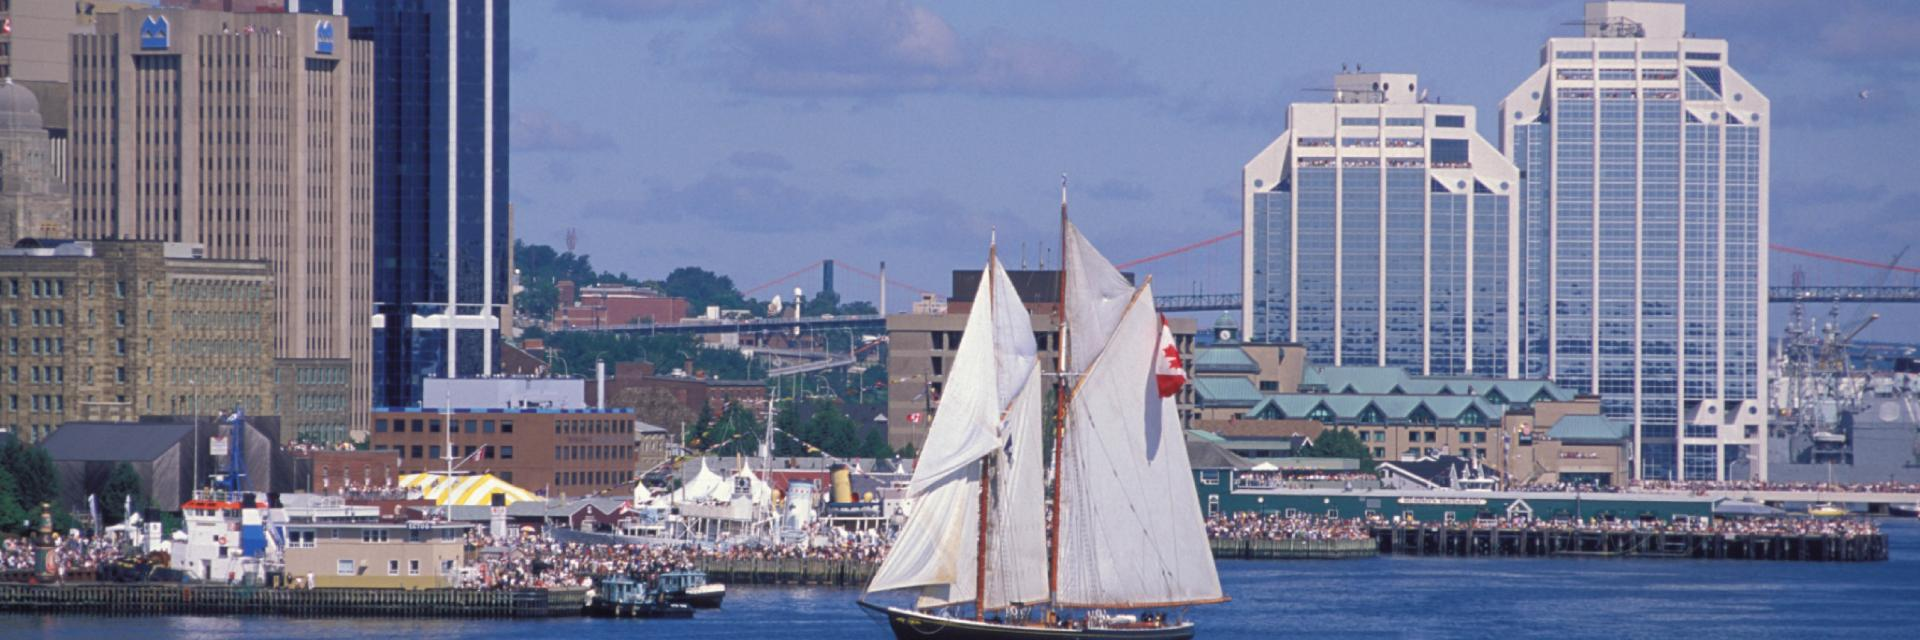 The Bluenose II sails in Halifax harbour with downtown buildings in the background.